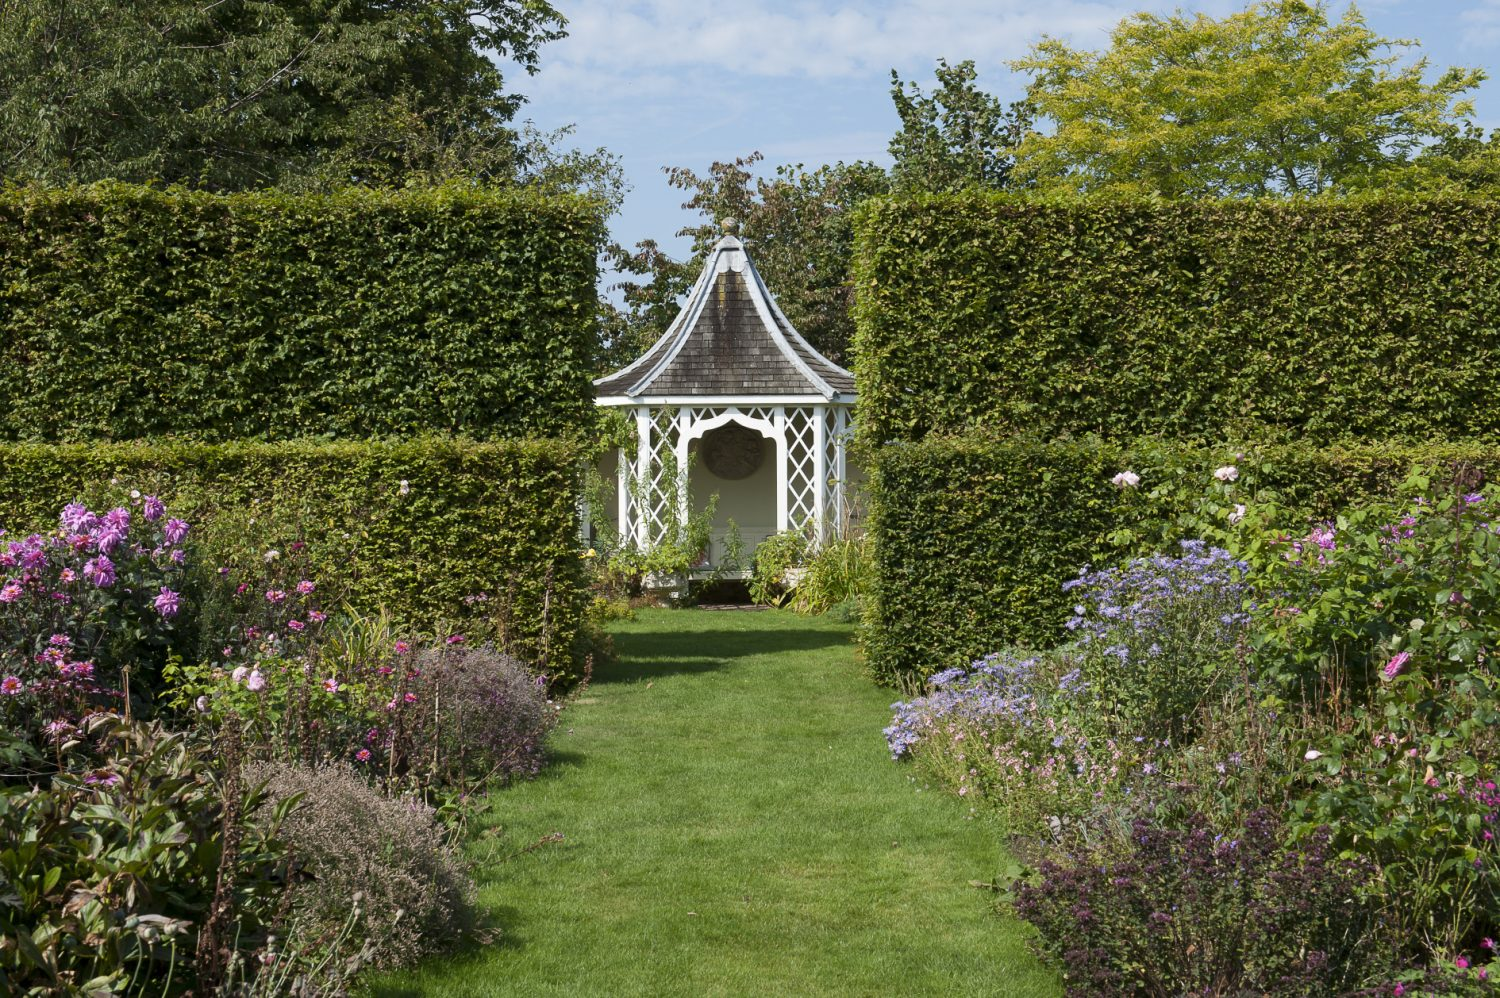 The bell-shaped summerhouse with its delicate trellis sides peeps through the gap in the hornbeam hedge